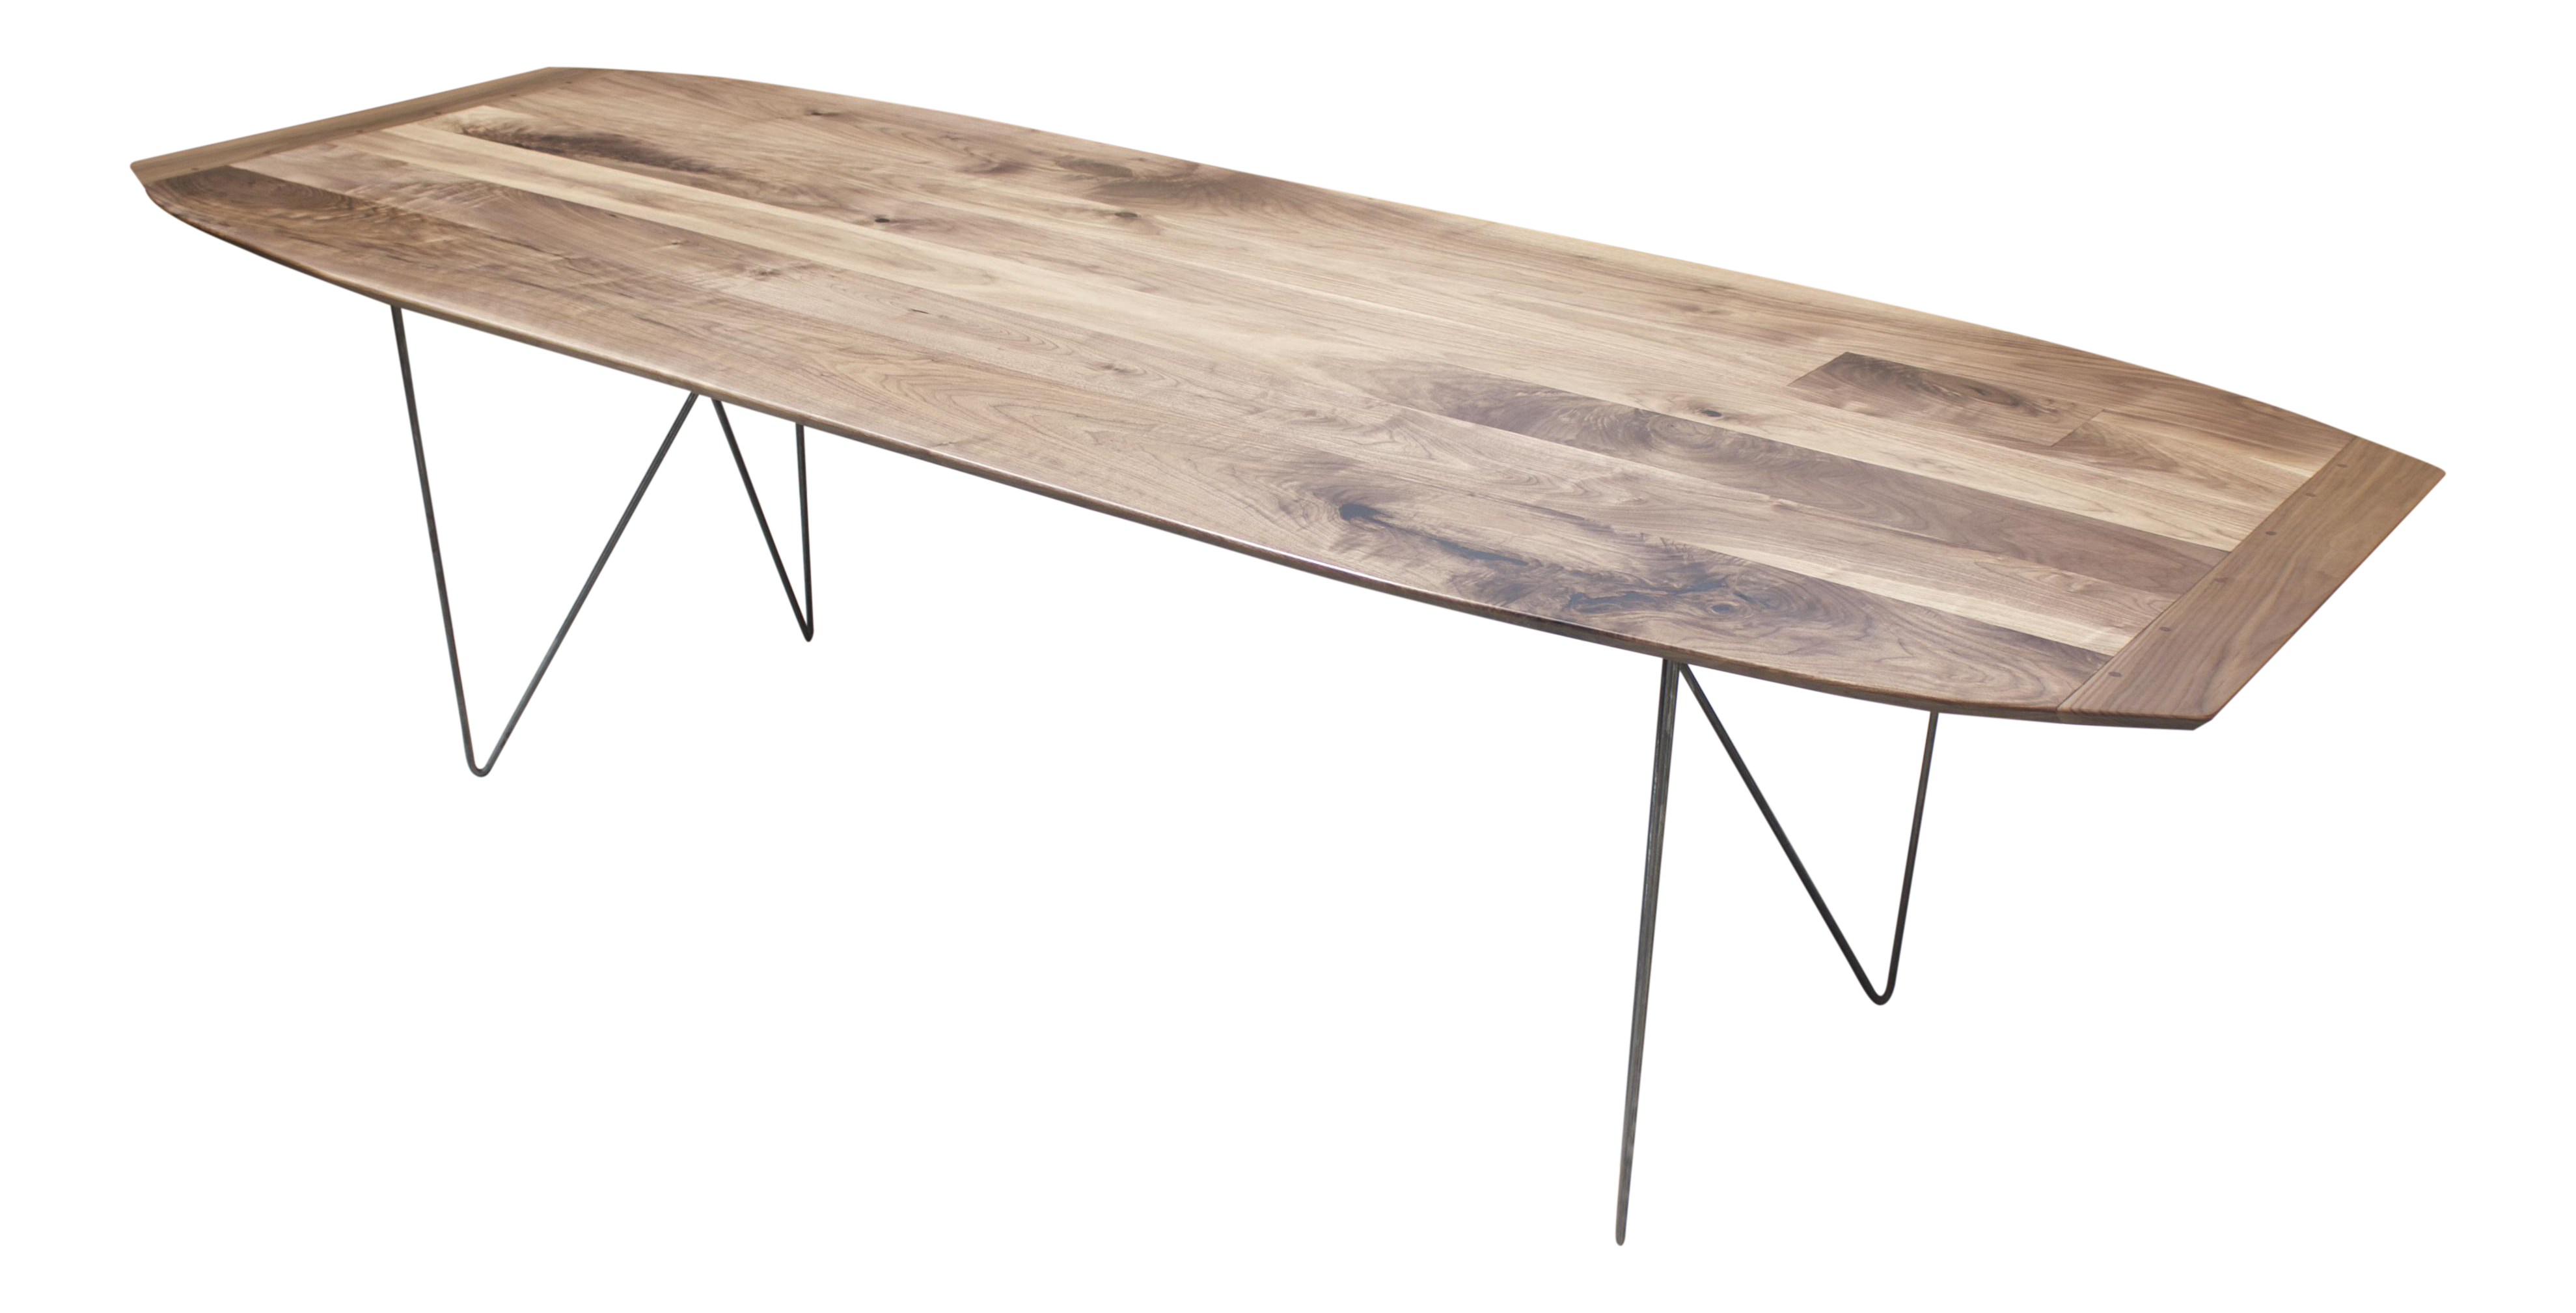 Modern Walnut Dining Table With Geometric Steel Base  : modern walnut dining table with geometric steel base 0064 from www.chairish.com size 3958 x 2017 png 4355kB